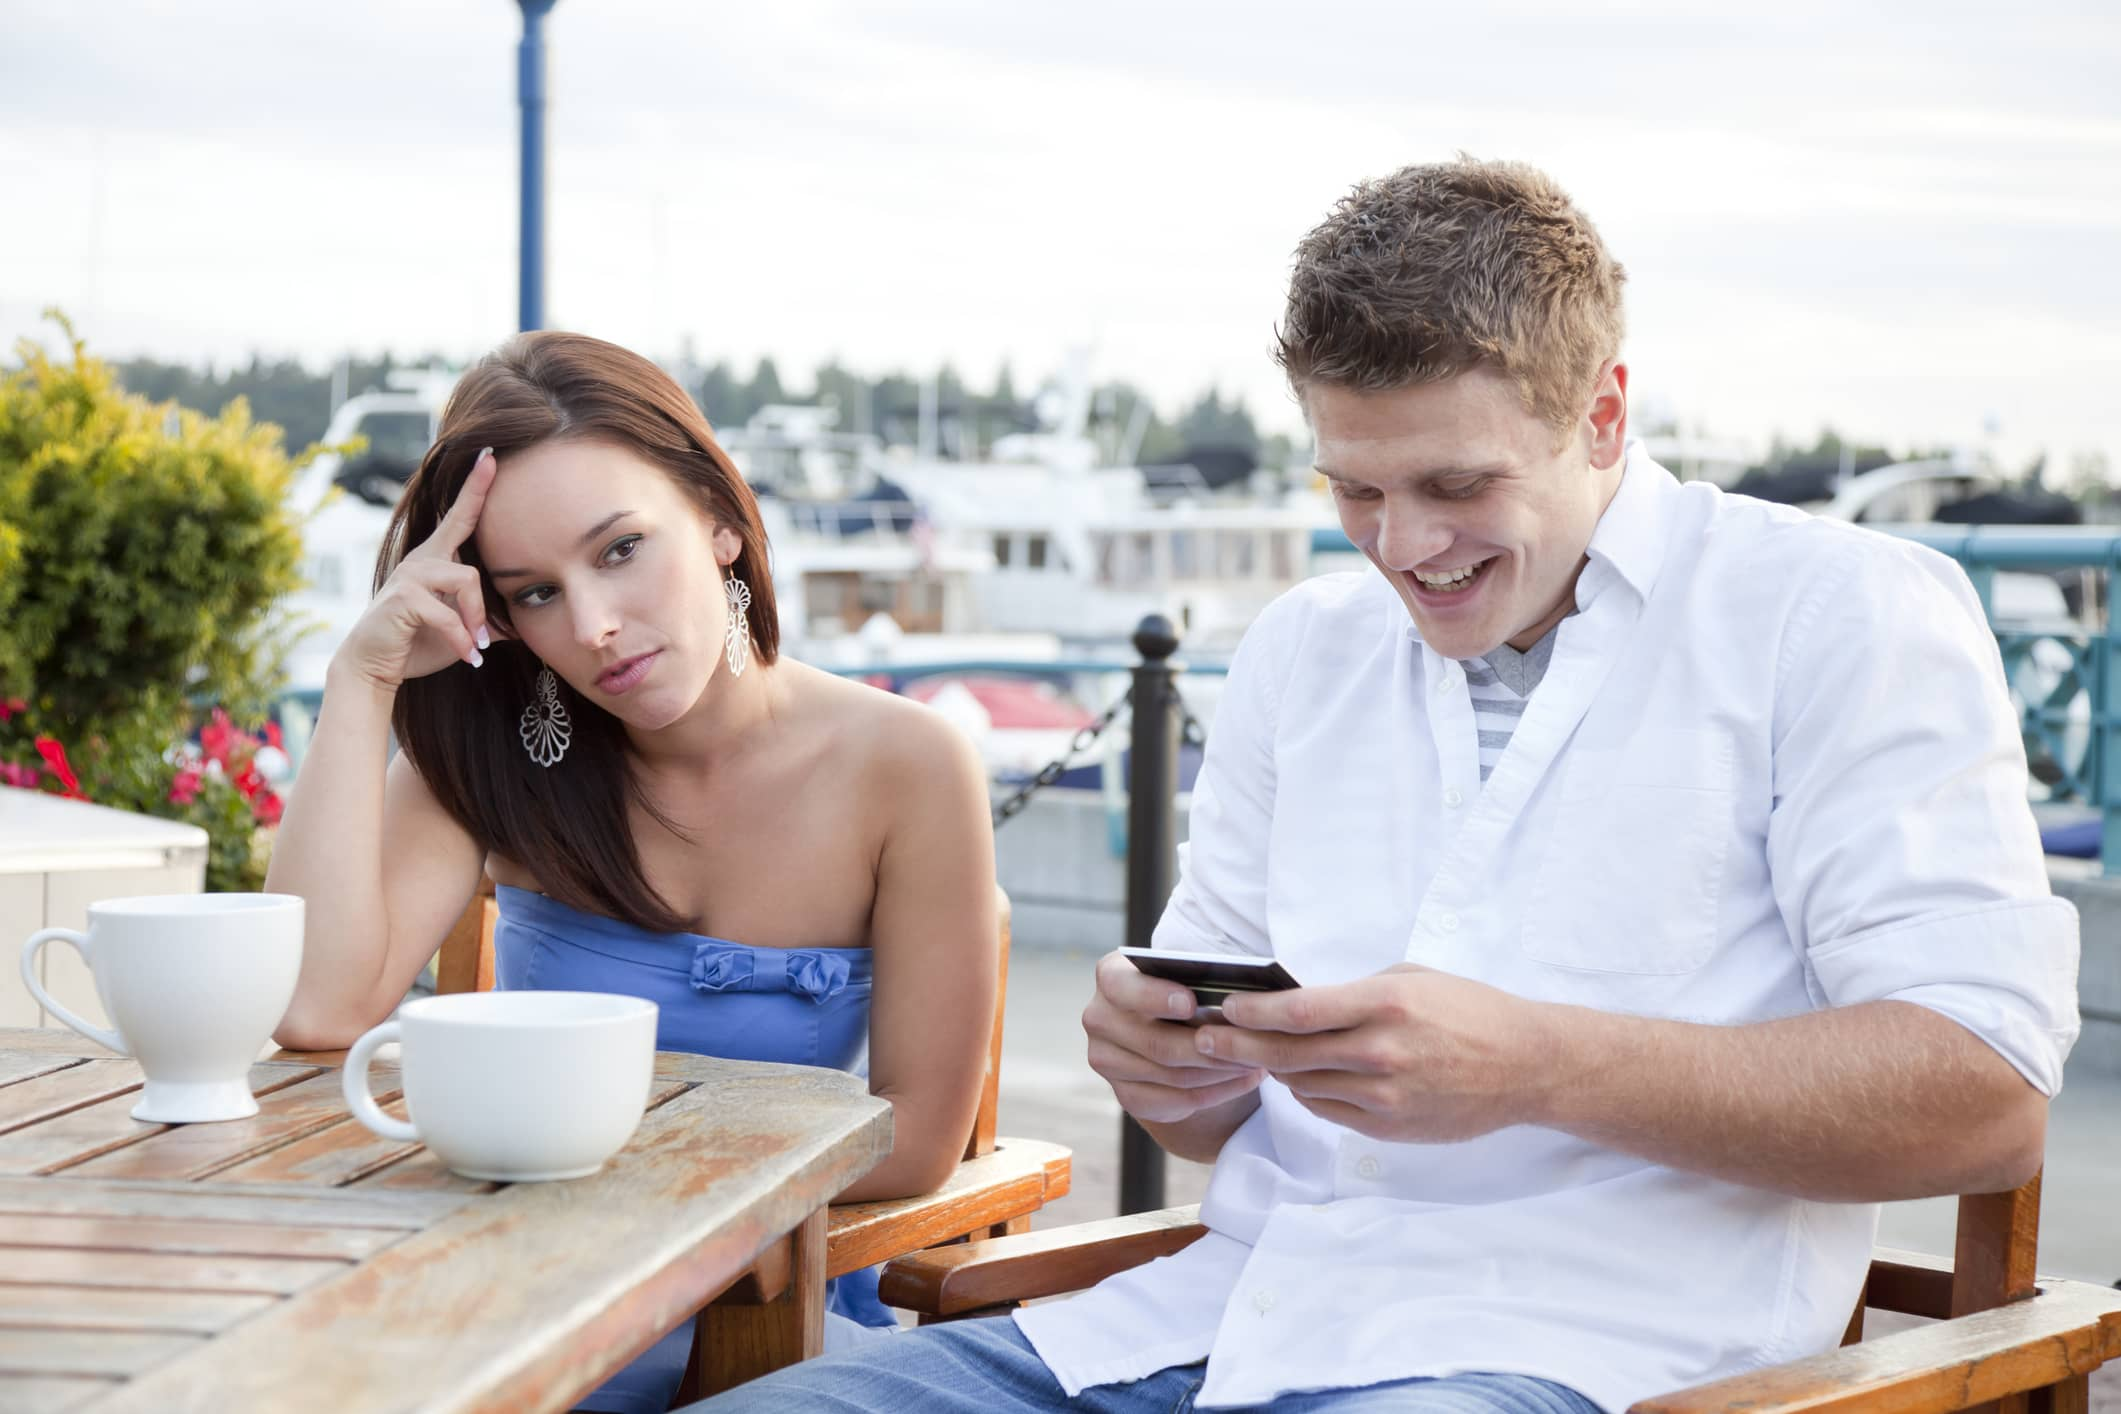 Single people treat online dating like fantasy footballthey keep trying to date out of their league